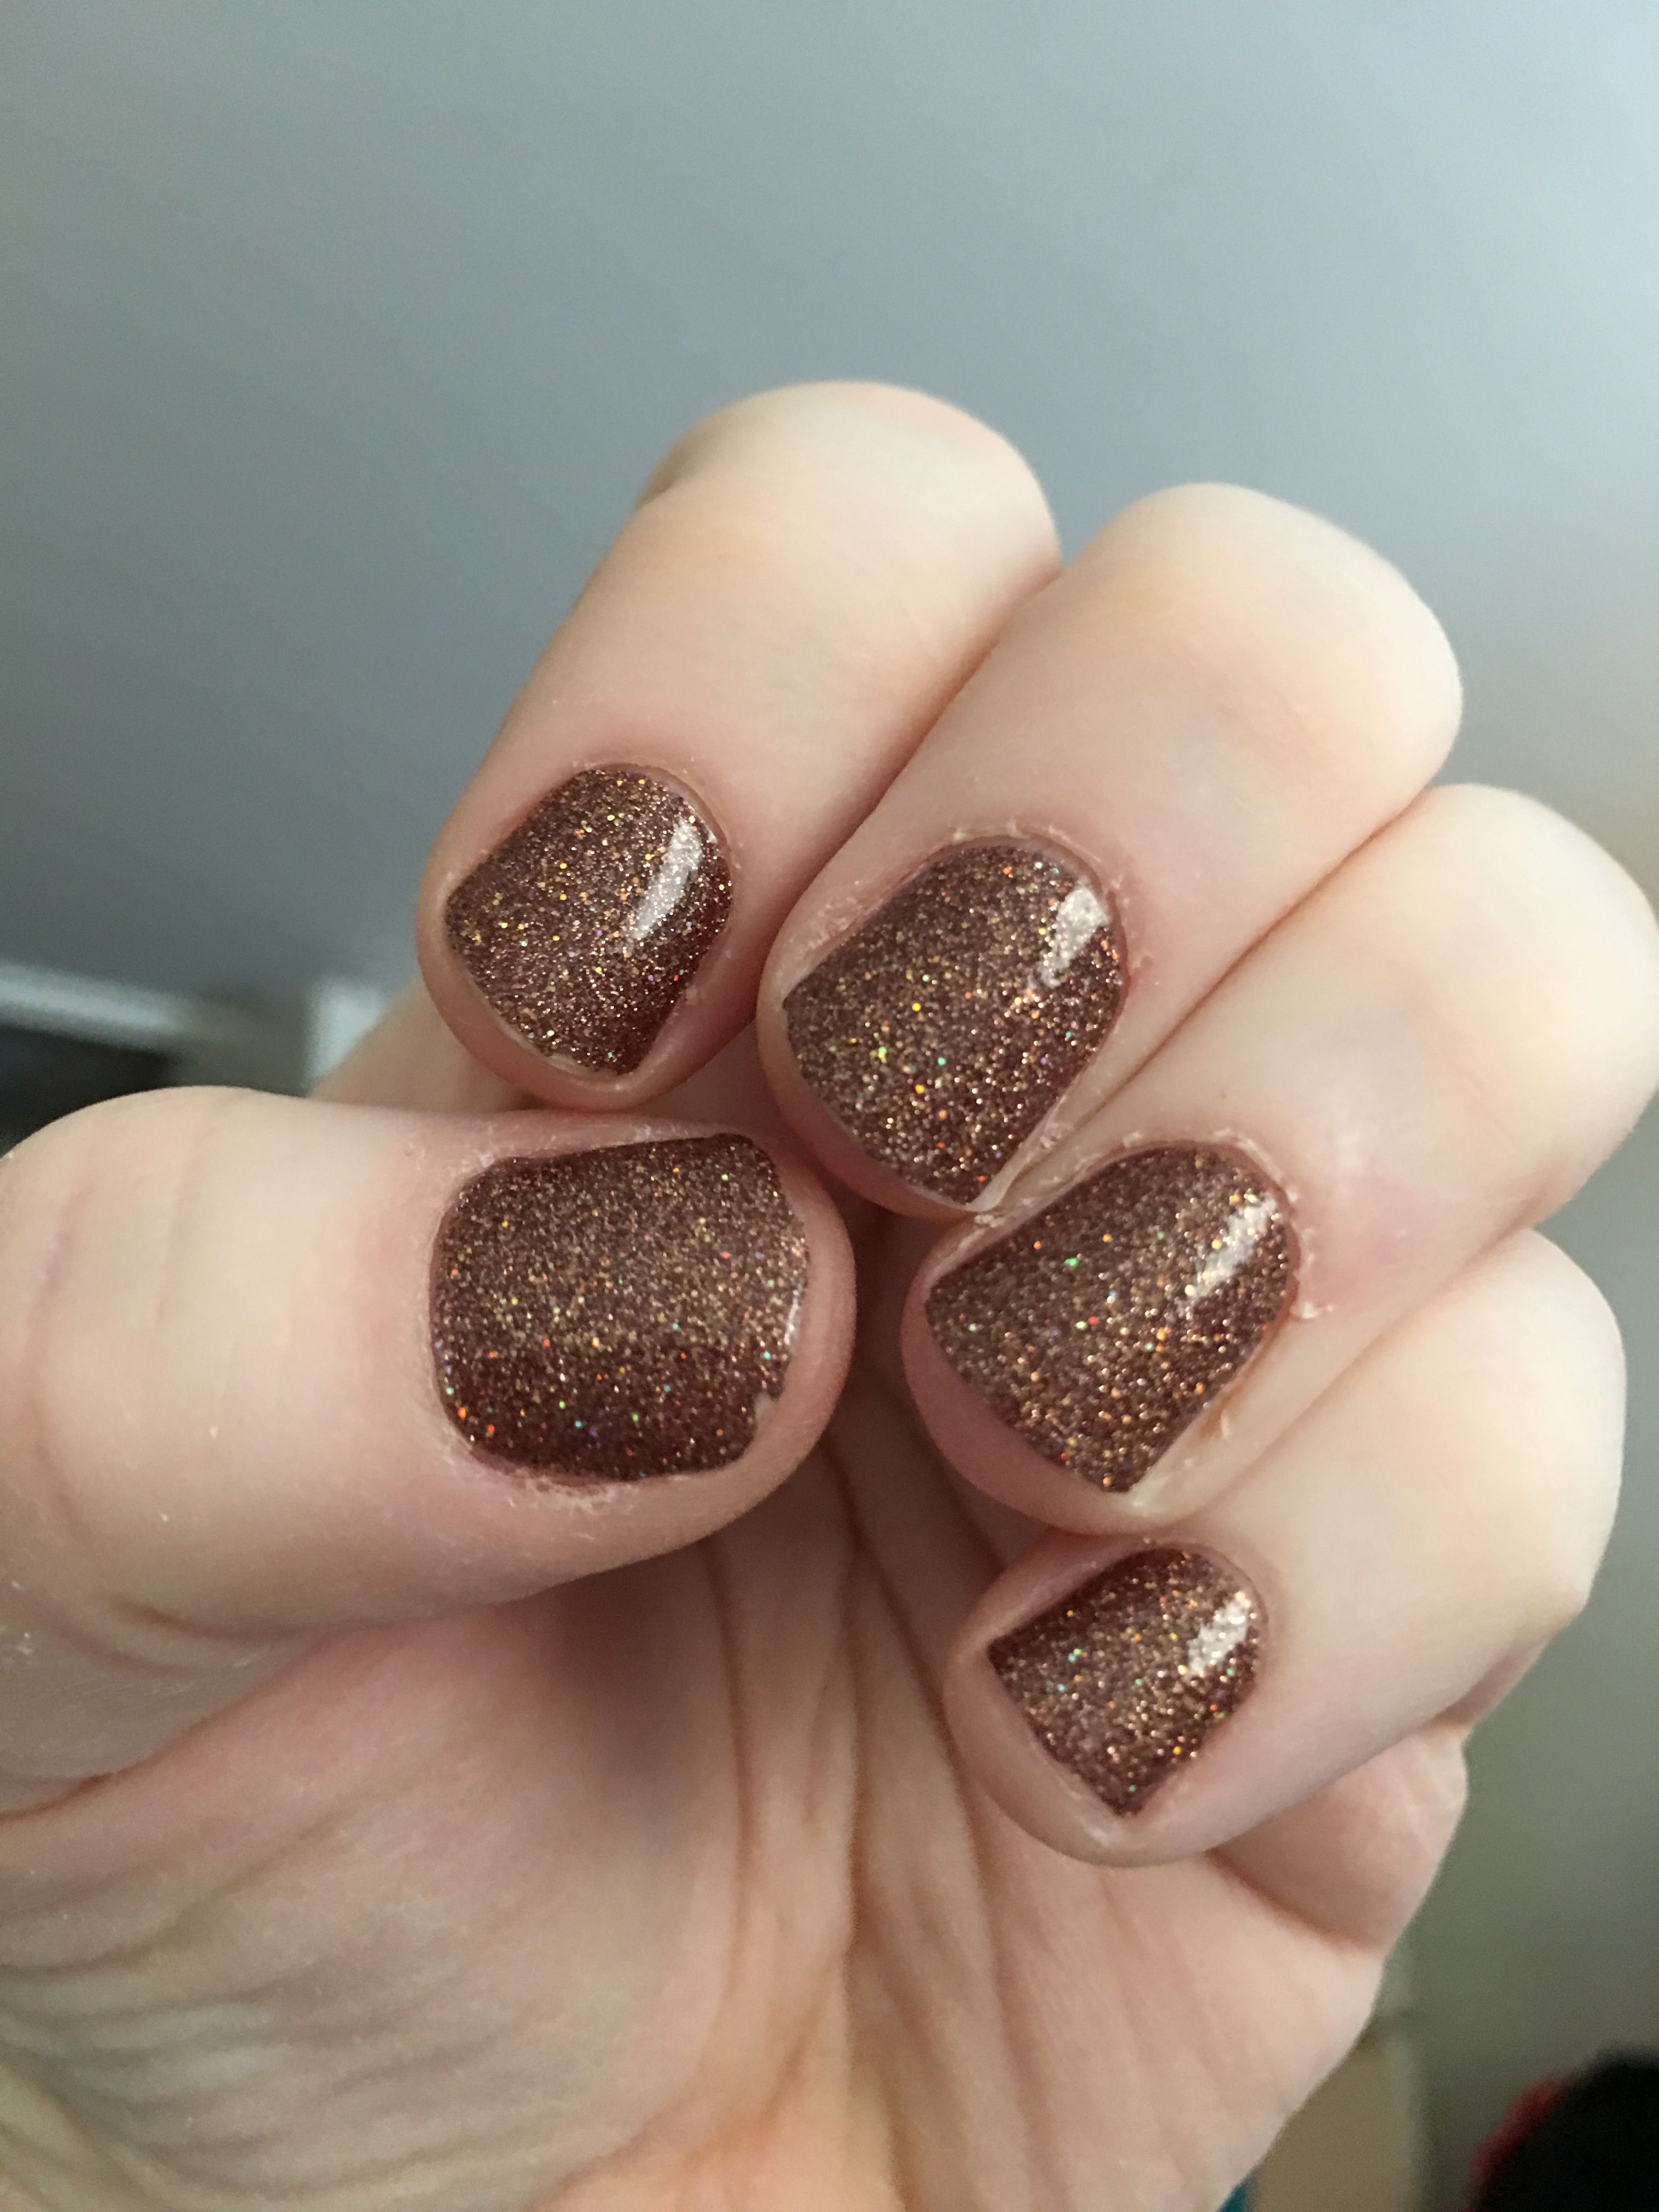 Color Street S Sahara Jewel Glitter Nail Strips Sparkly But Works As A Great Neutral Color As